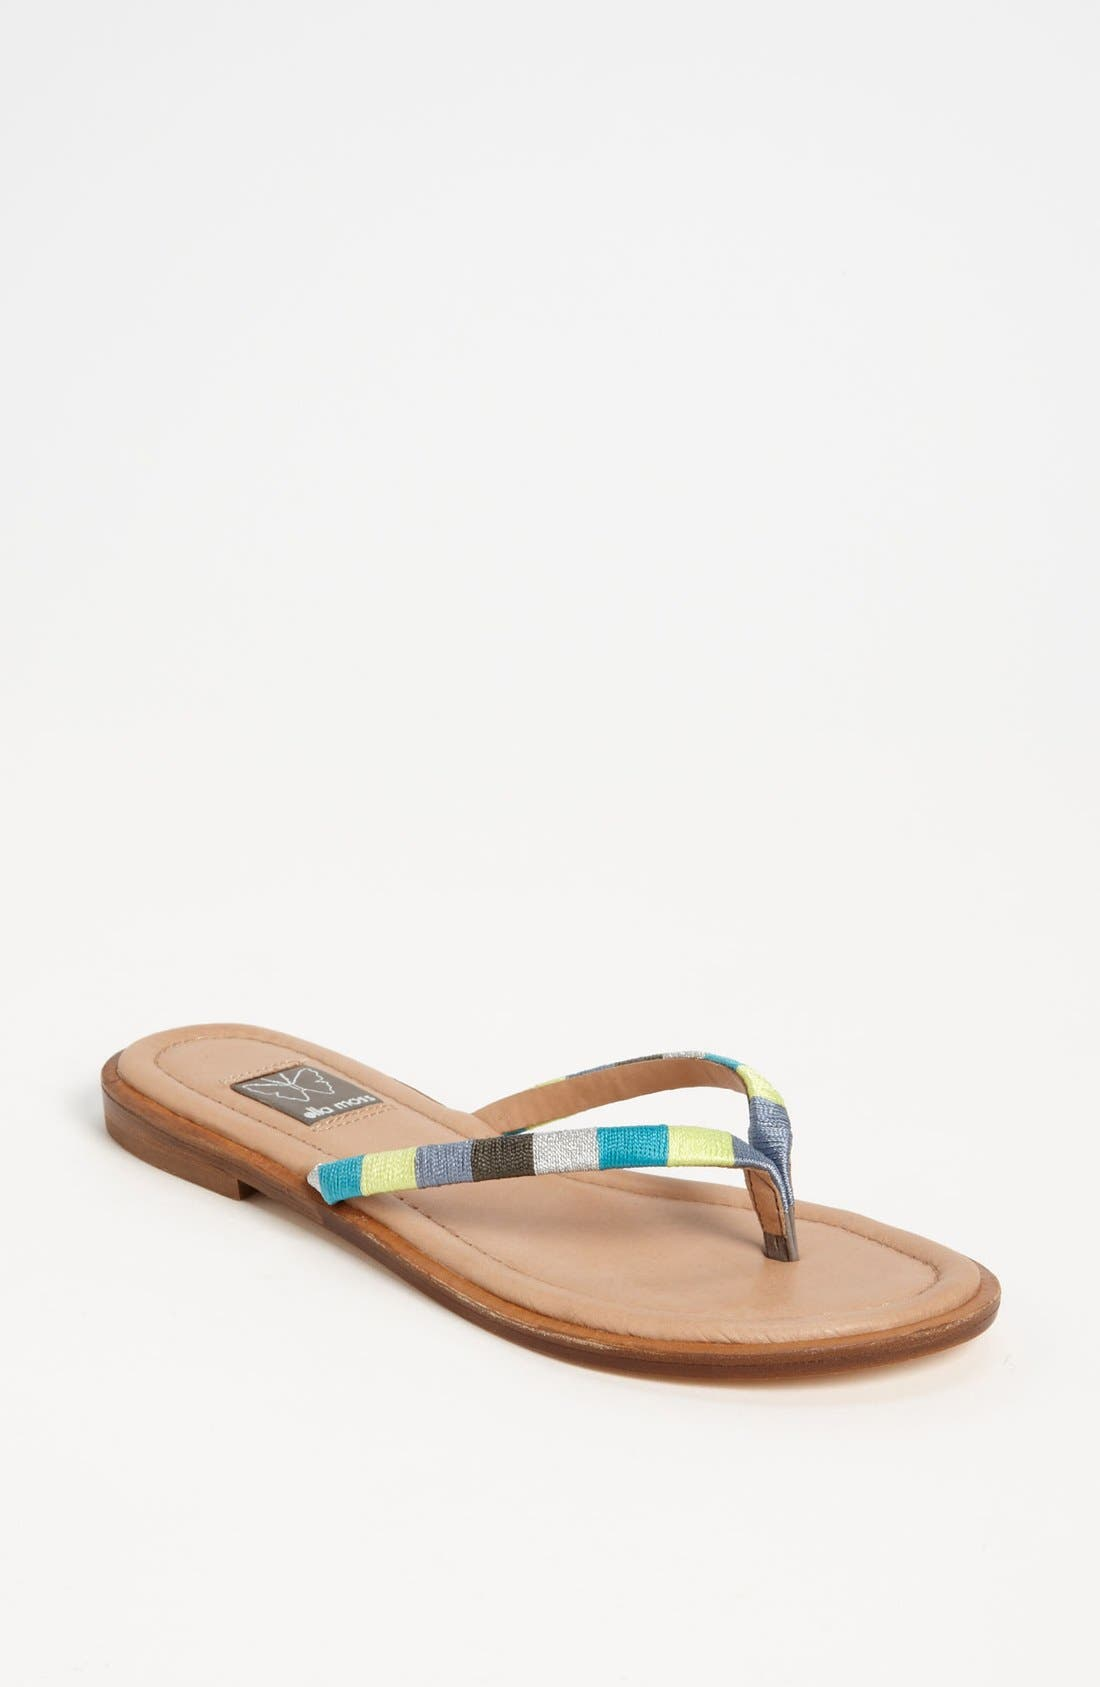 Alternate Image 1 Selected - Ella Moss 'Georgina' Sandal